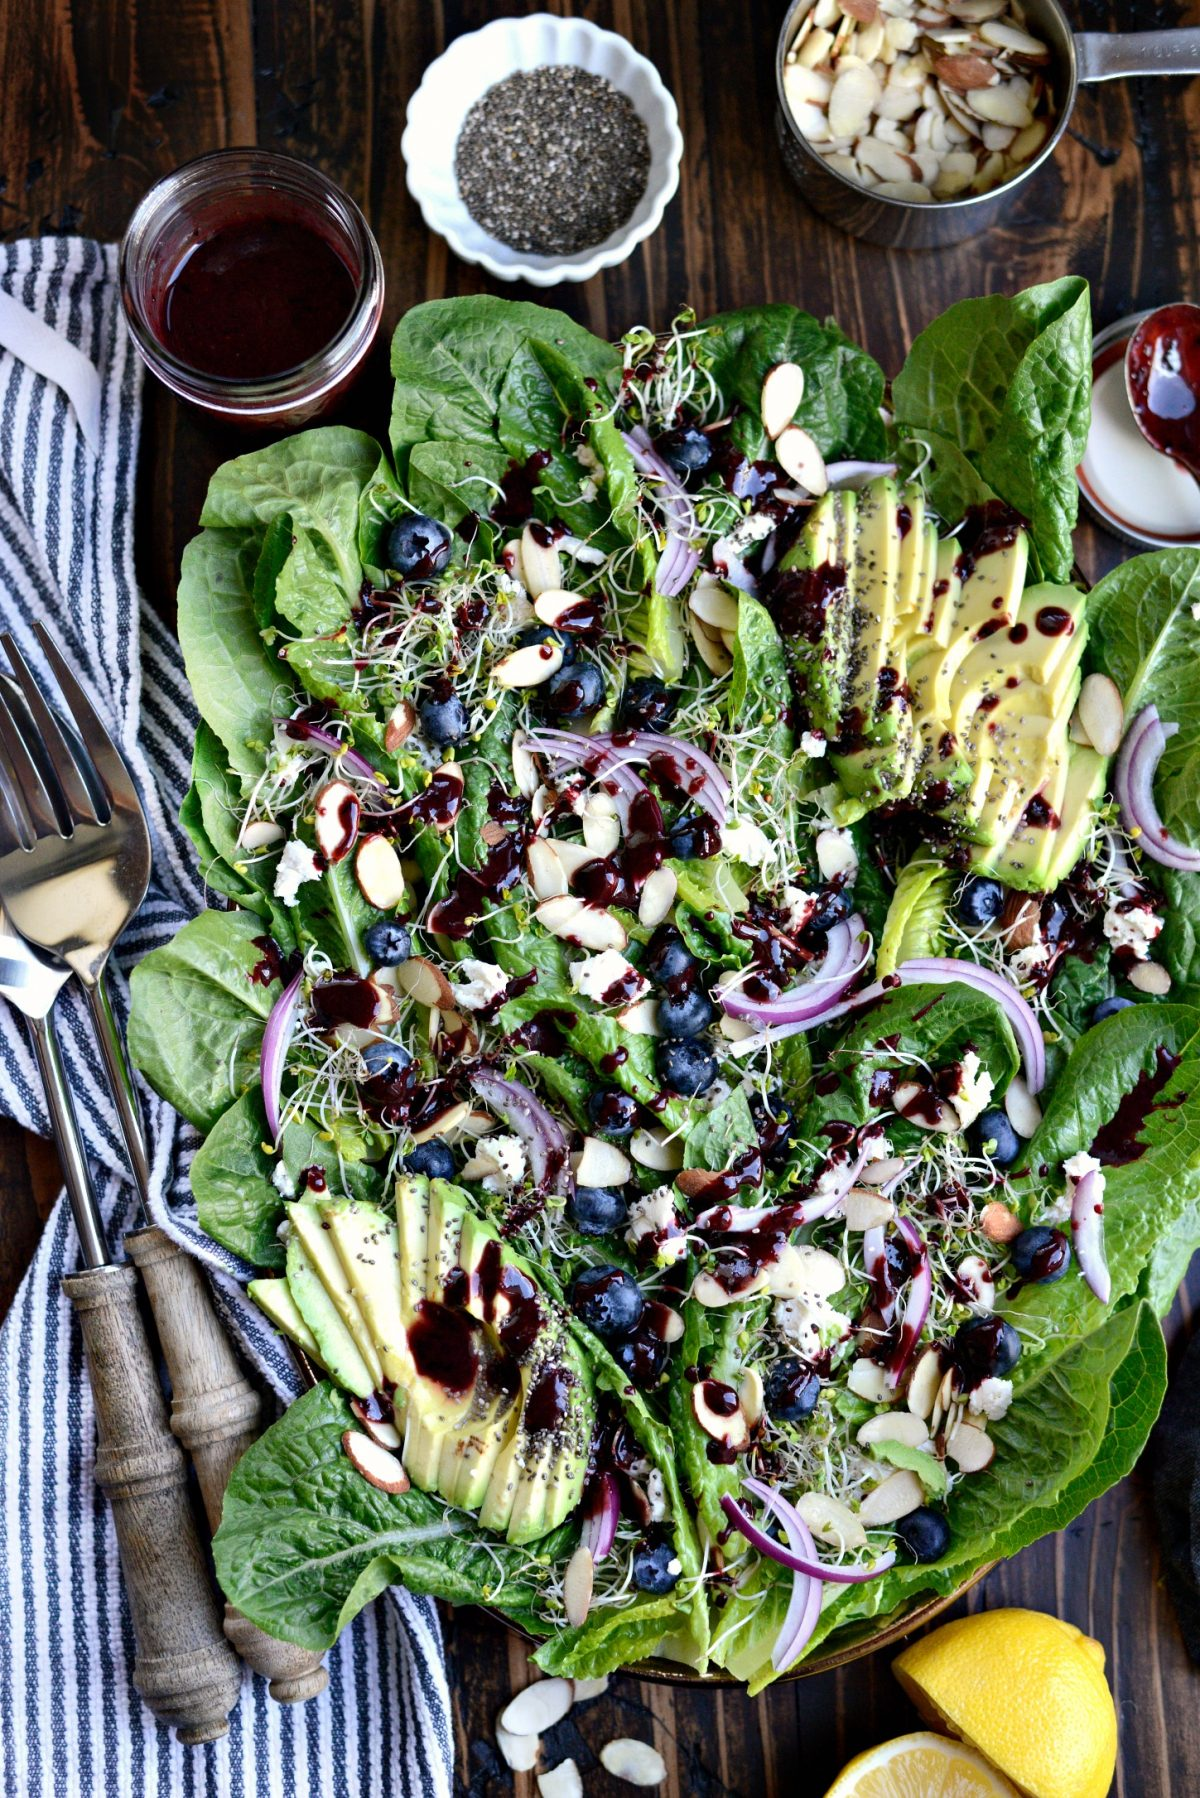 Blueberry Almond Salad with Blueberry Balsamic Vinaigrette